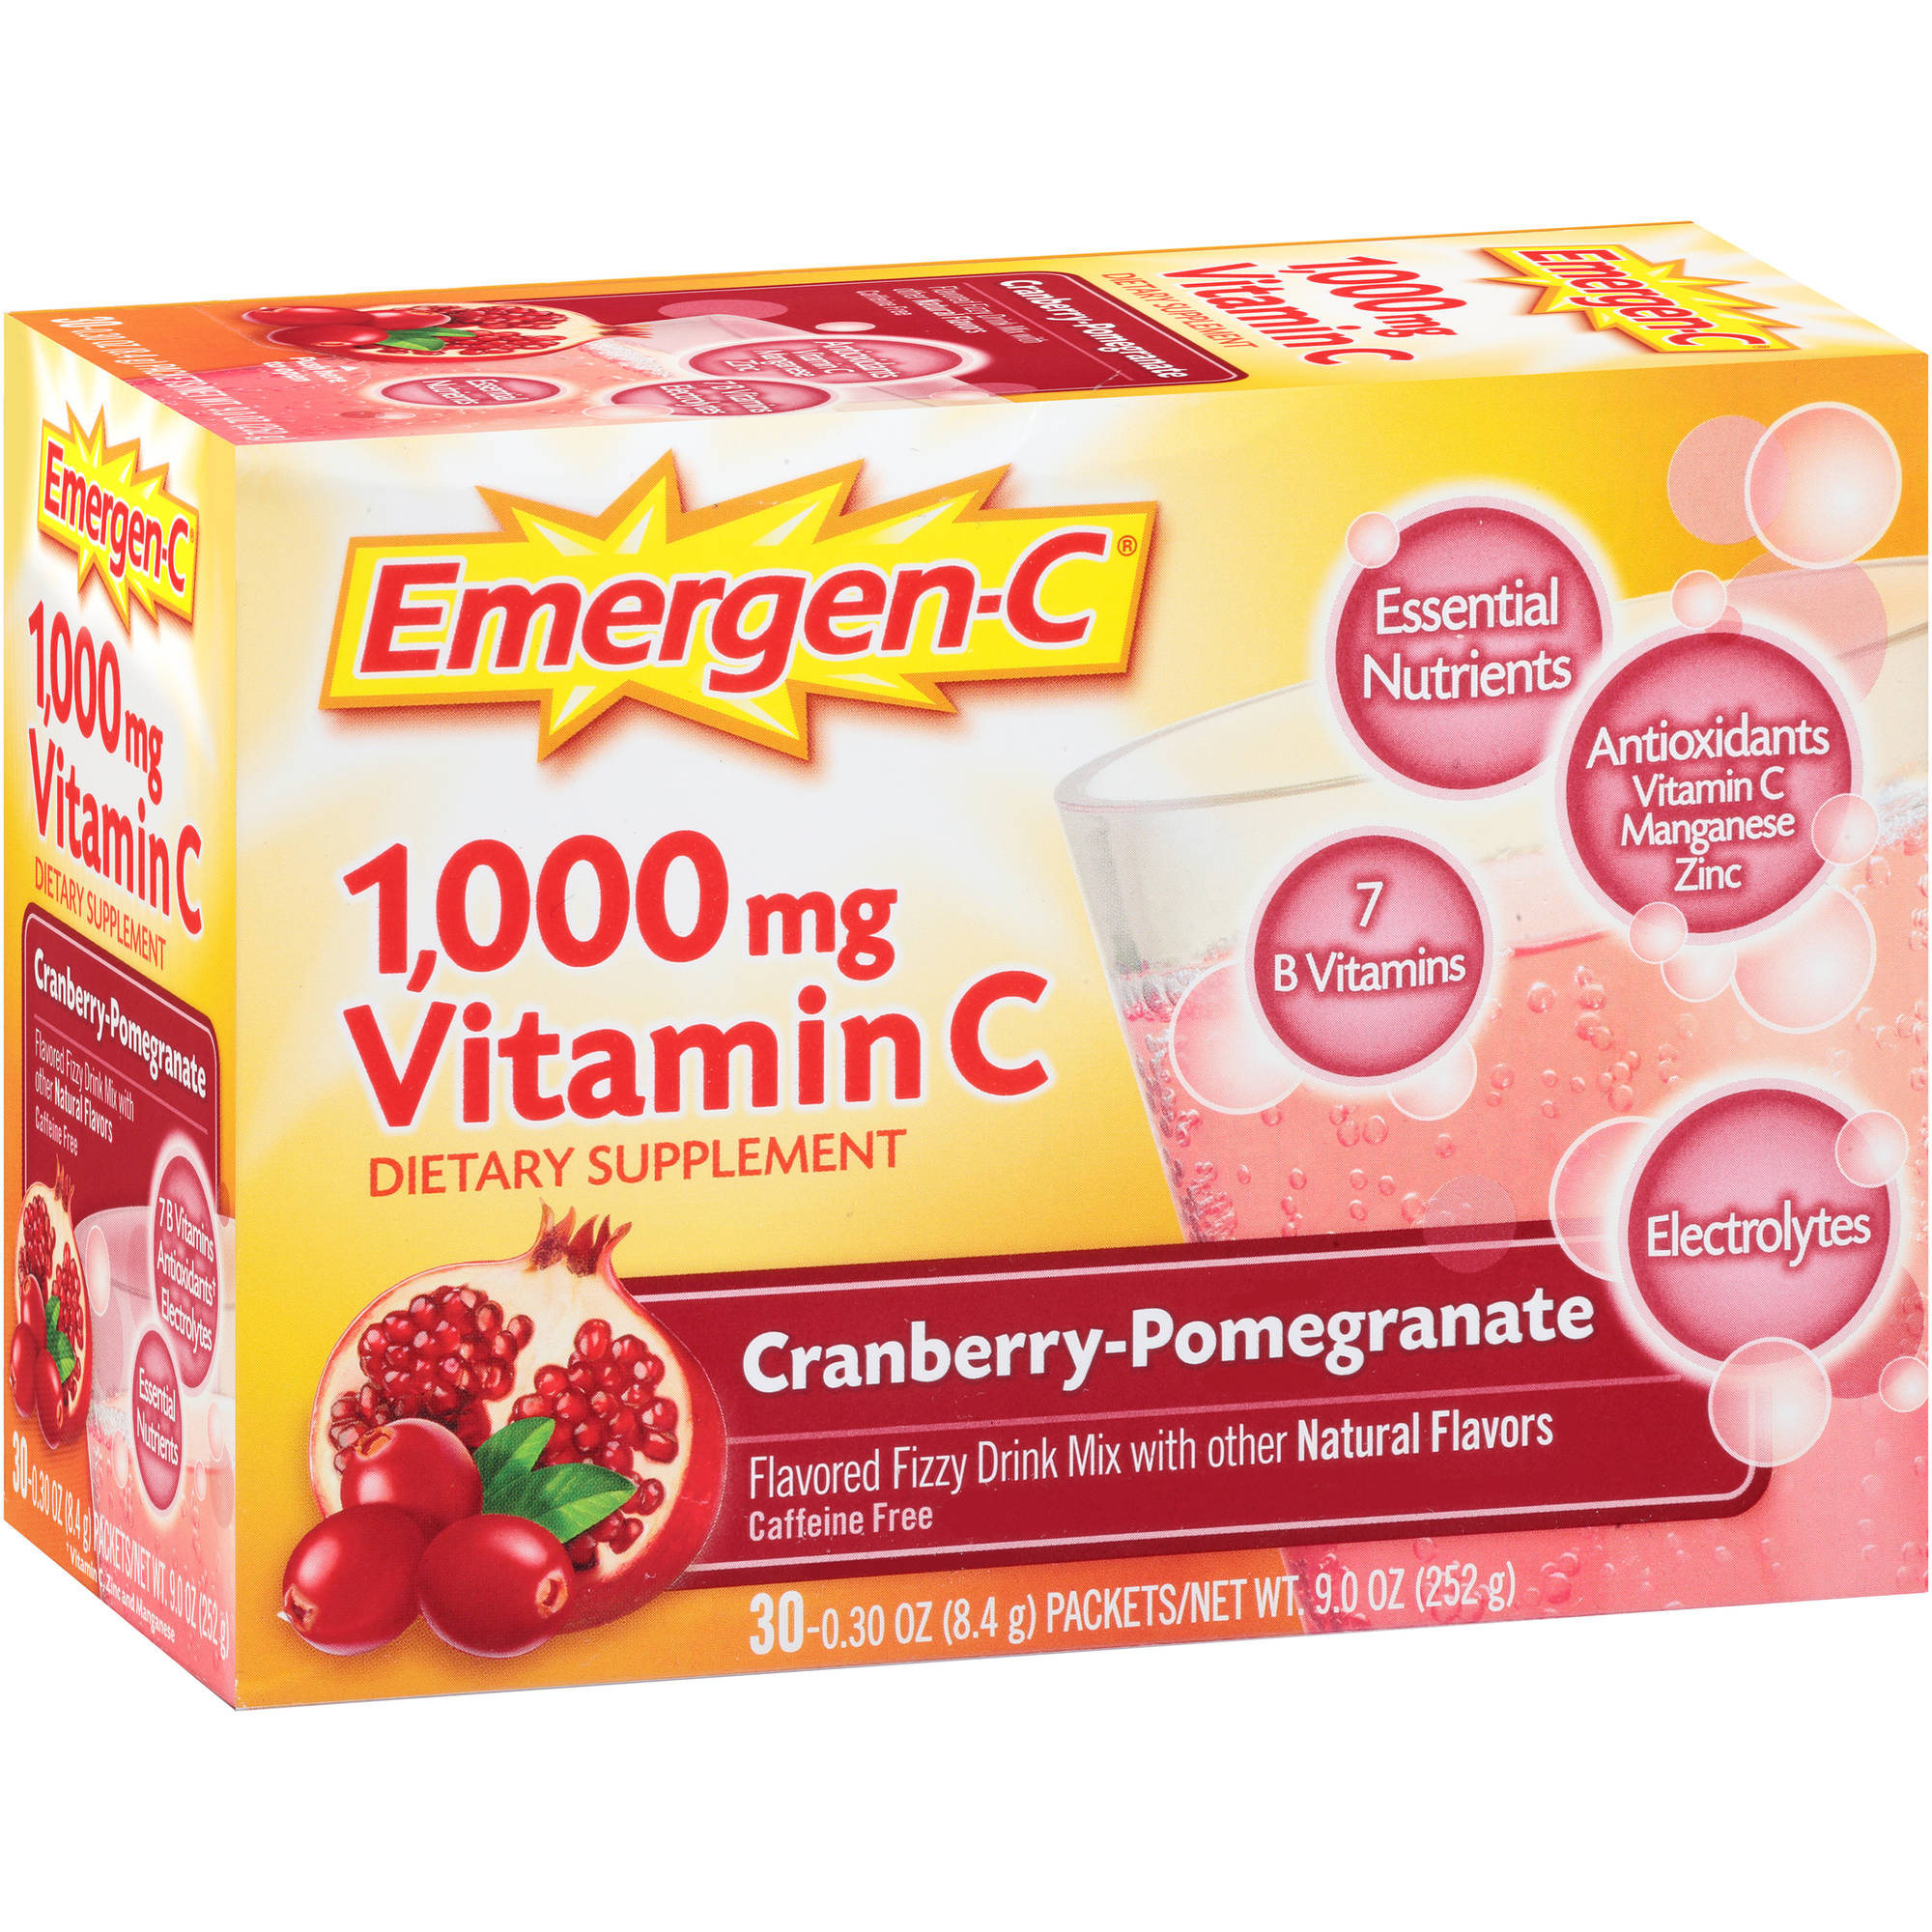 Emergen-C Dietary Supplement in Cranberry-Pomegranate Flavor 30 Count